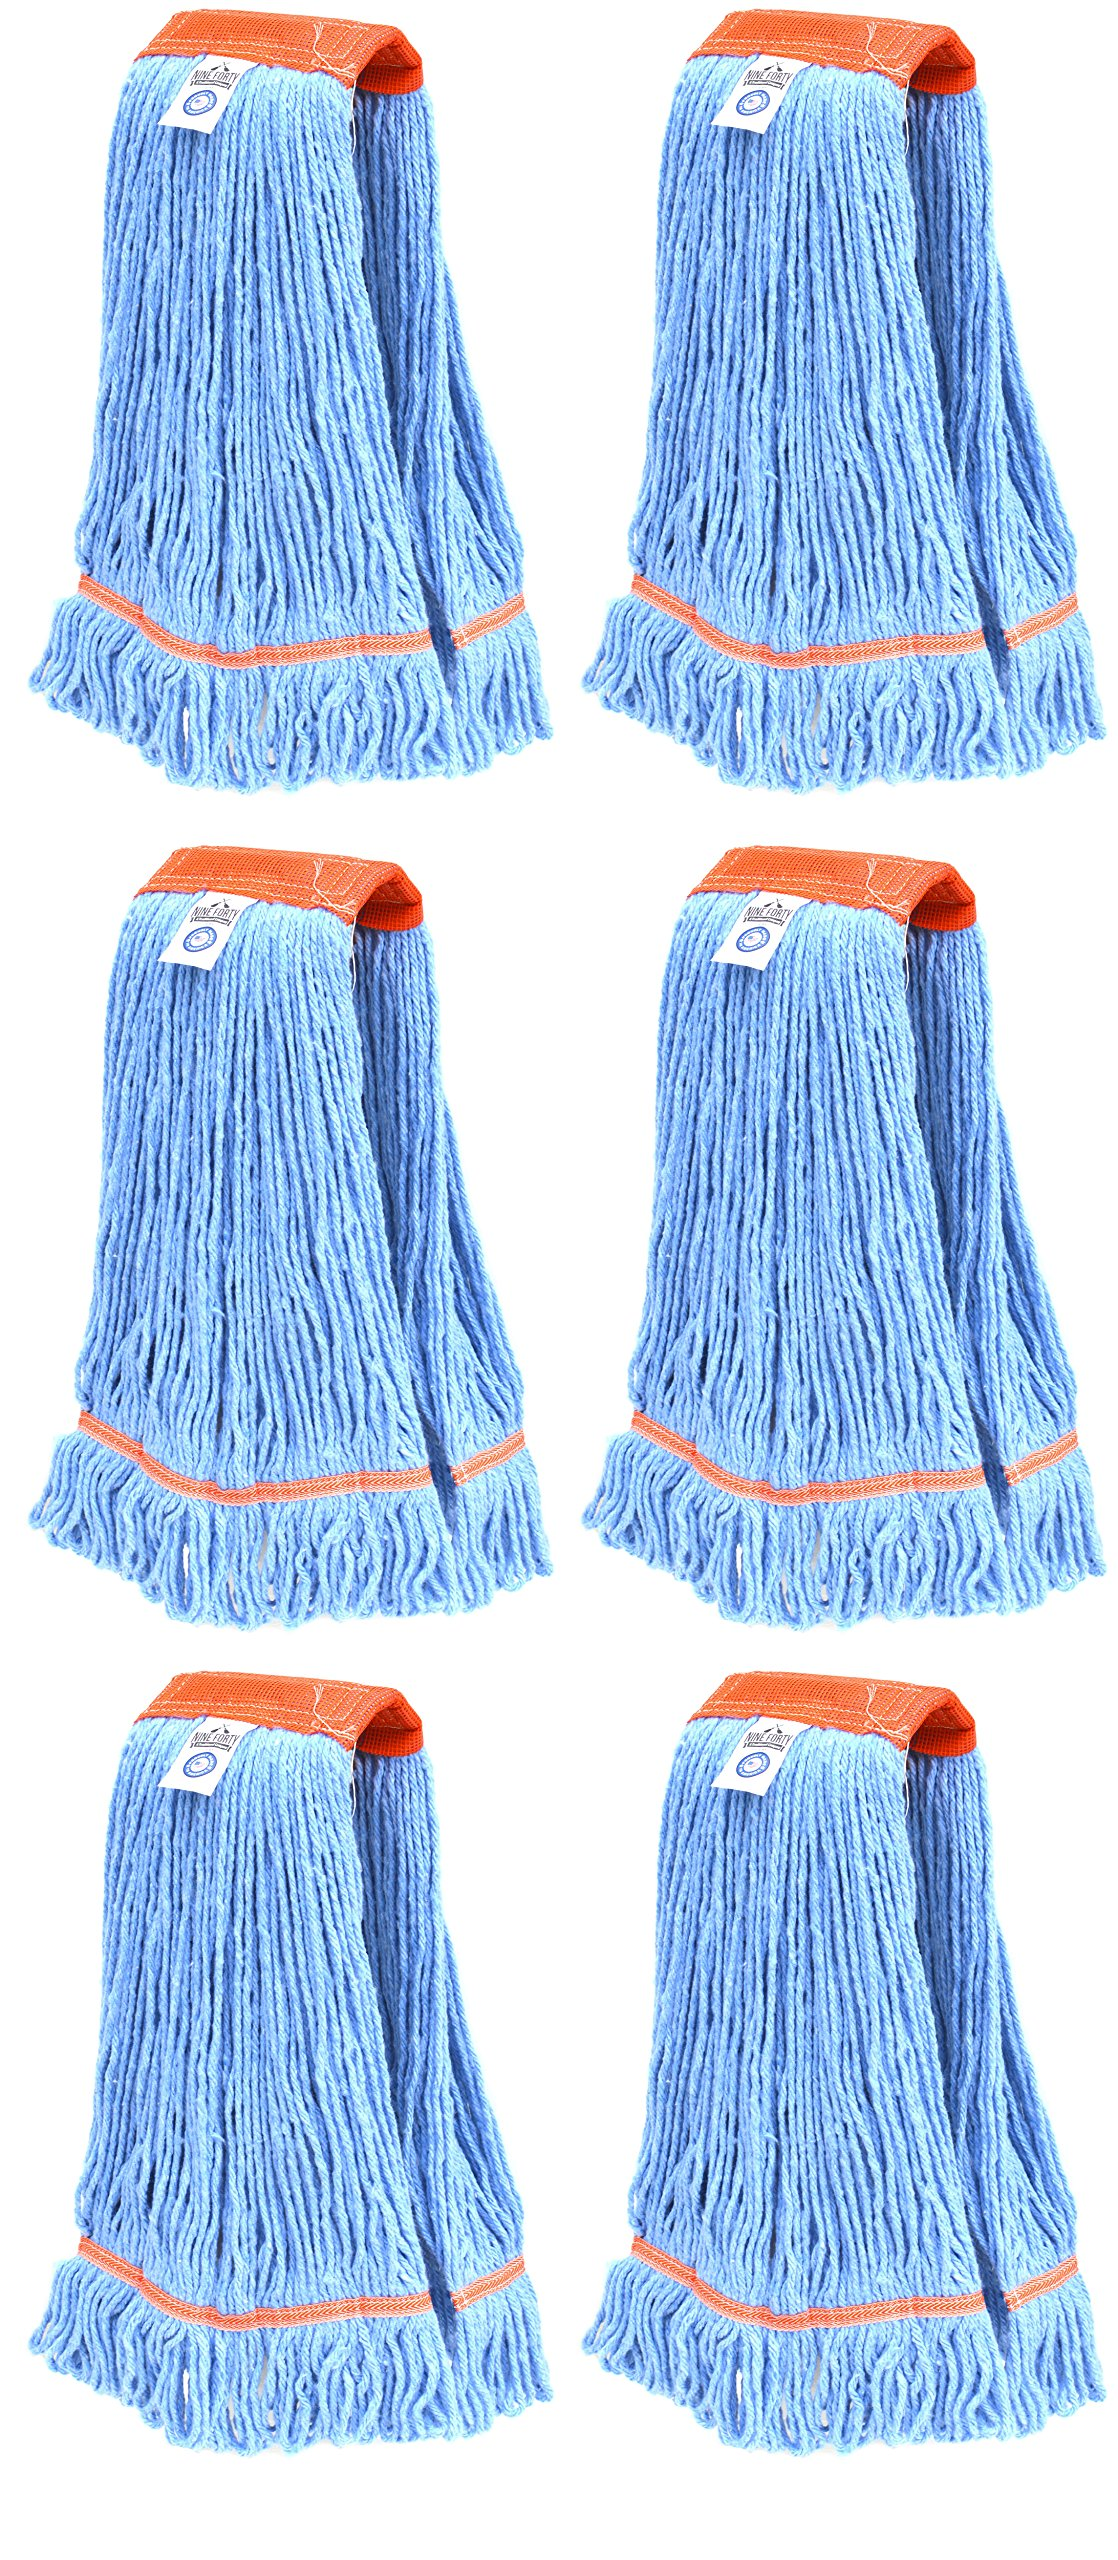 Nine Forty Industrial | Commercial Strength Premium Looped End Floor Cleaning Wet Mop Head Refill | Replacement – Heavy Duty 4 Ply Synthetic Yarn (6 Pack, Large)